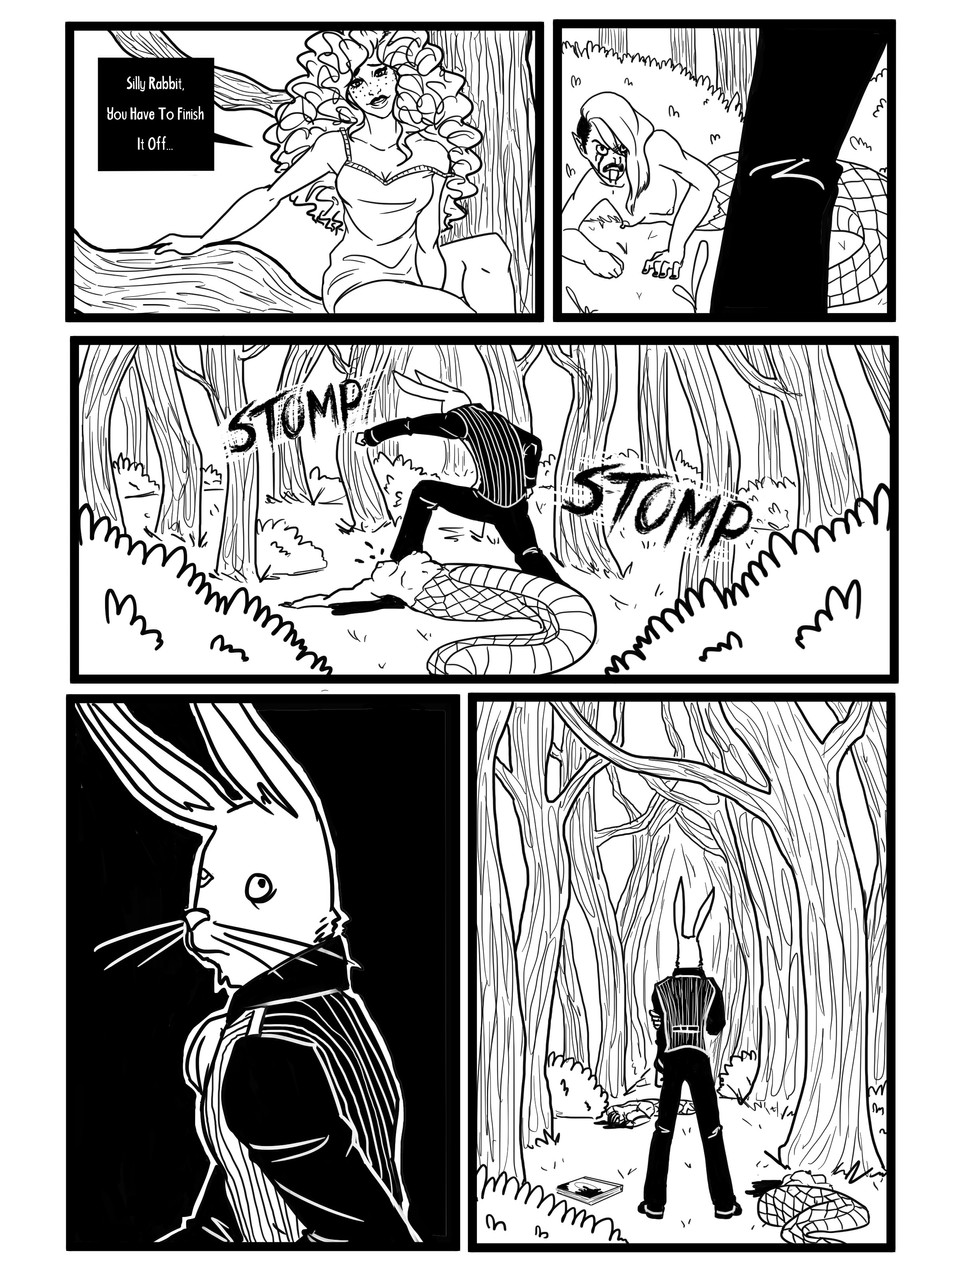 Rabbit PG 5